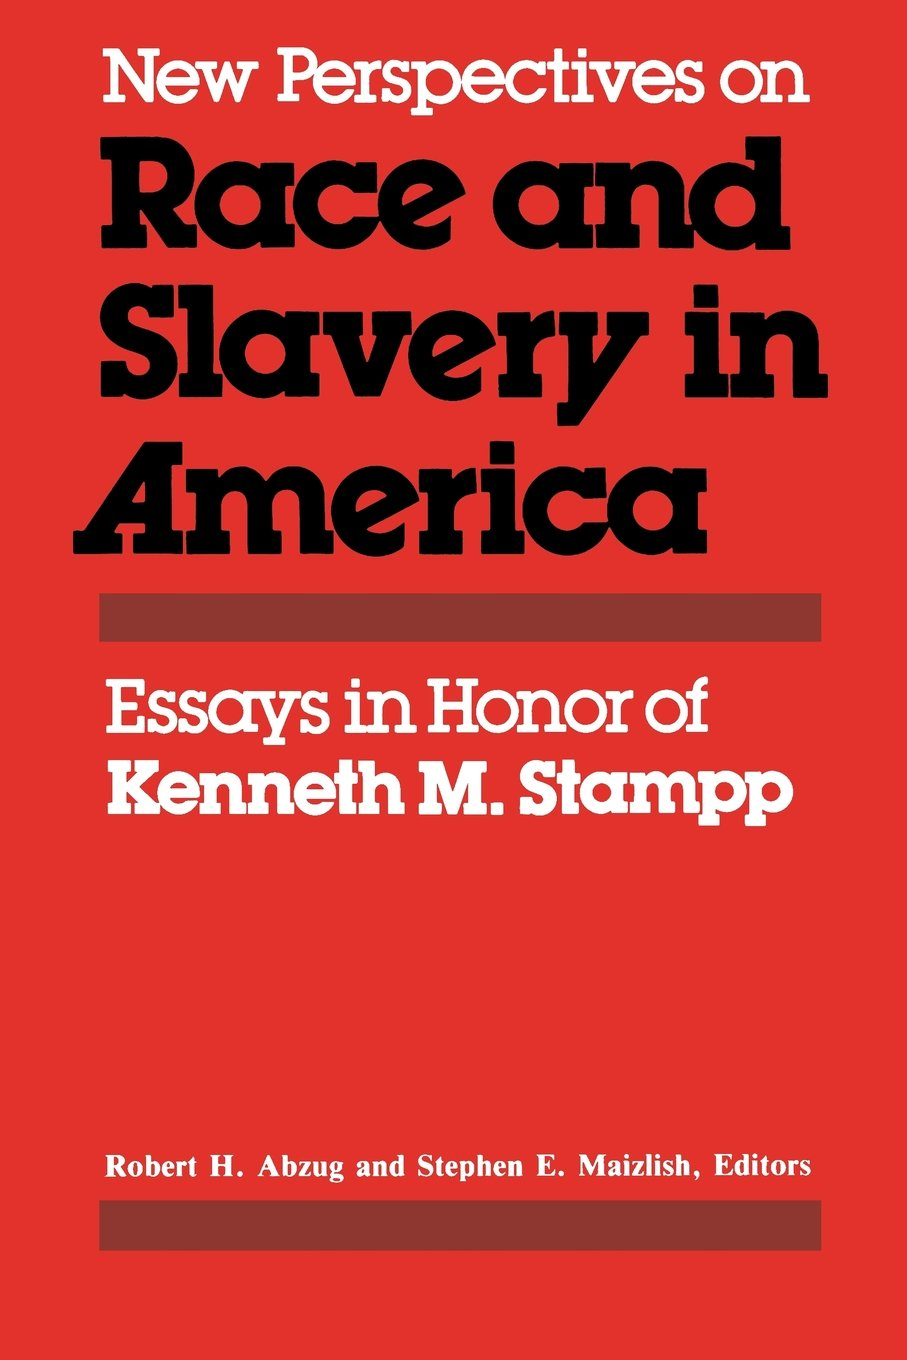 new perspectives on race and slavery in america essays in honor new perspectives on race and slavery in america essays in honor of kenneth m stampp robert h abzug stephen e maizlish 9780813150833 com